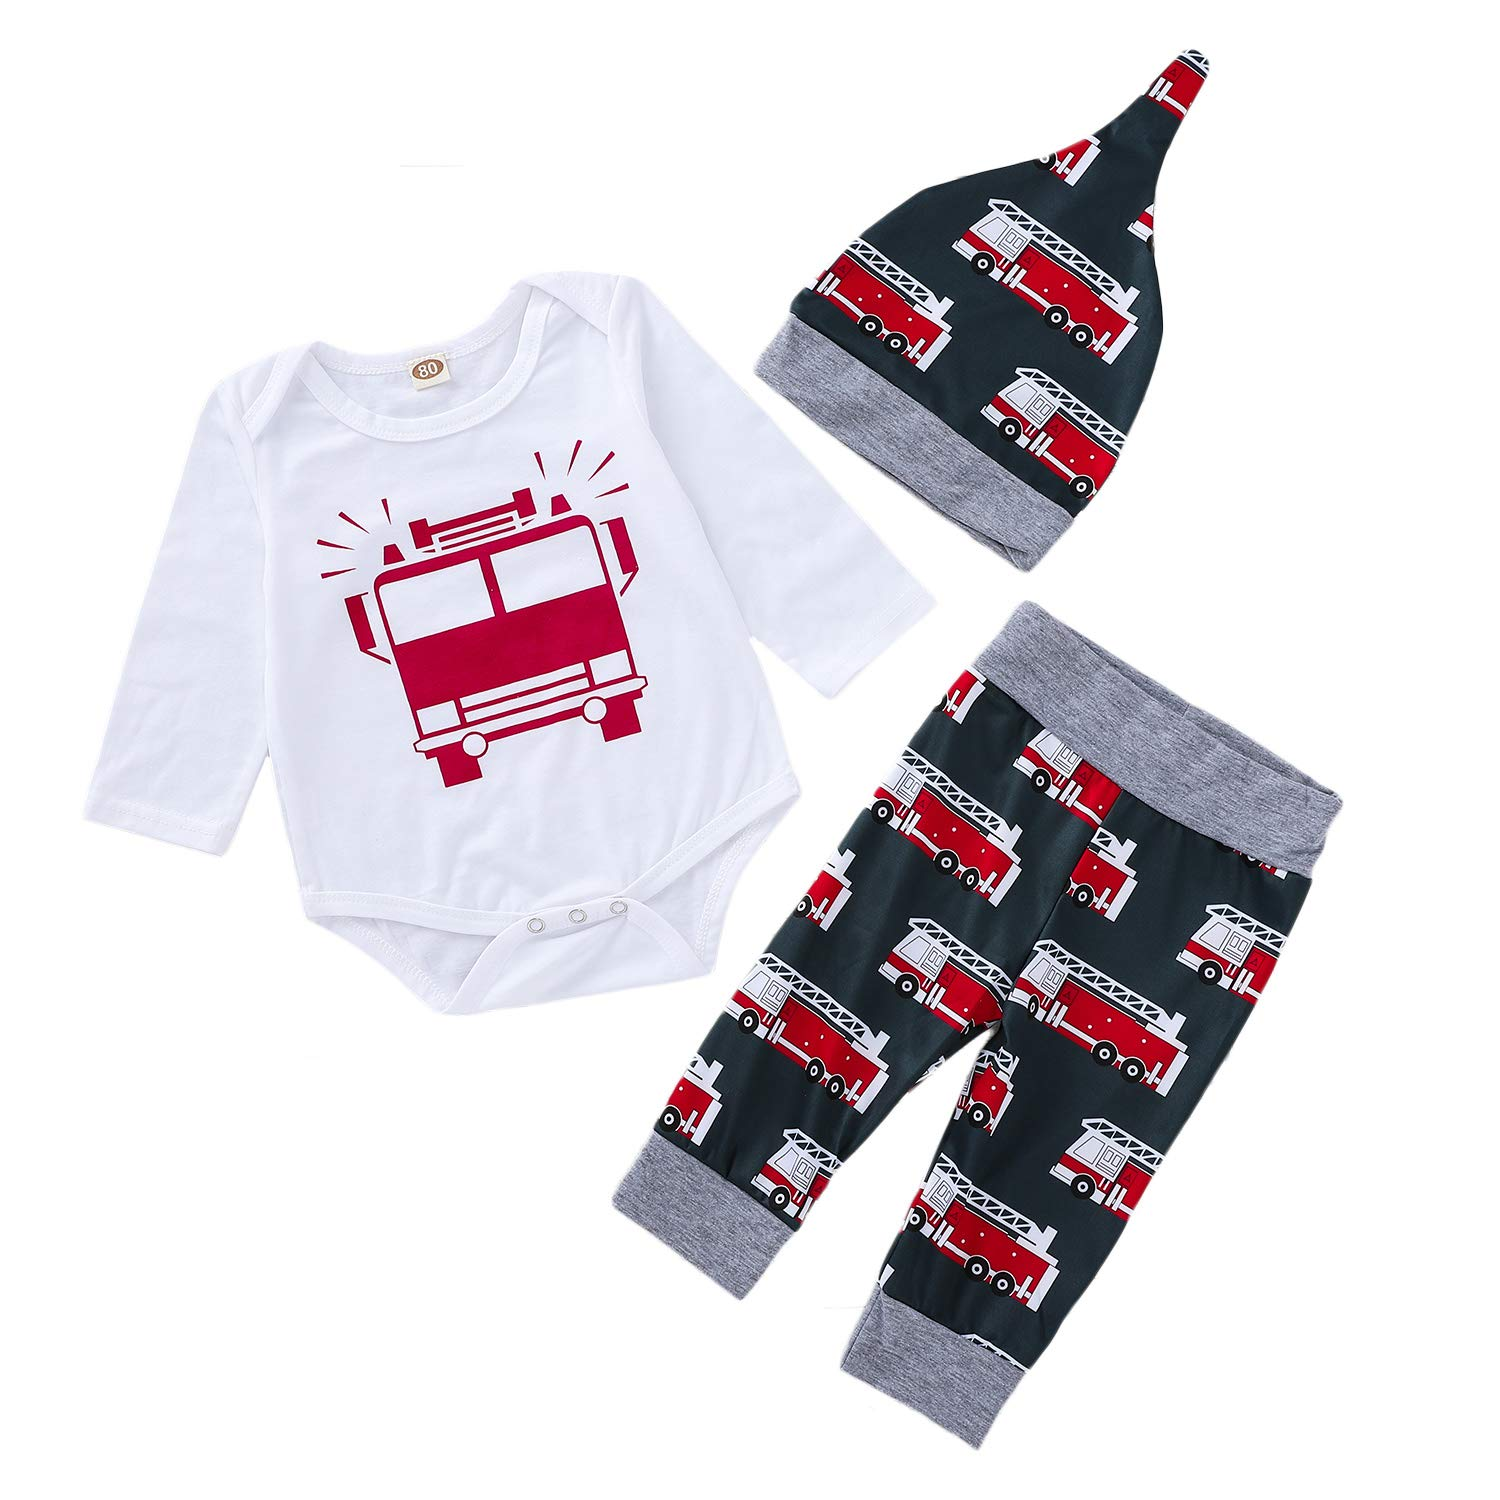 4a1429c5fa63 Amazon.com  3PCS Infant Rompers Pants Hat Clothes Set Baby Boys Girls Fire  Truck Printed Romper Matching Harem Bottoms Hat Outfits  Clothing